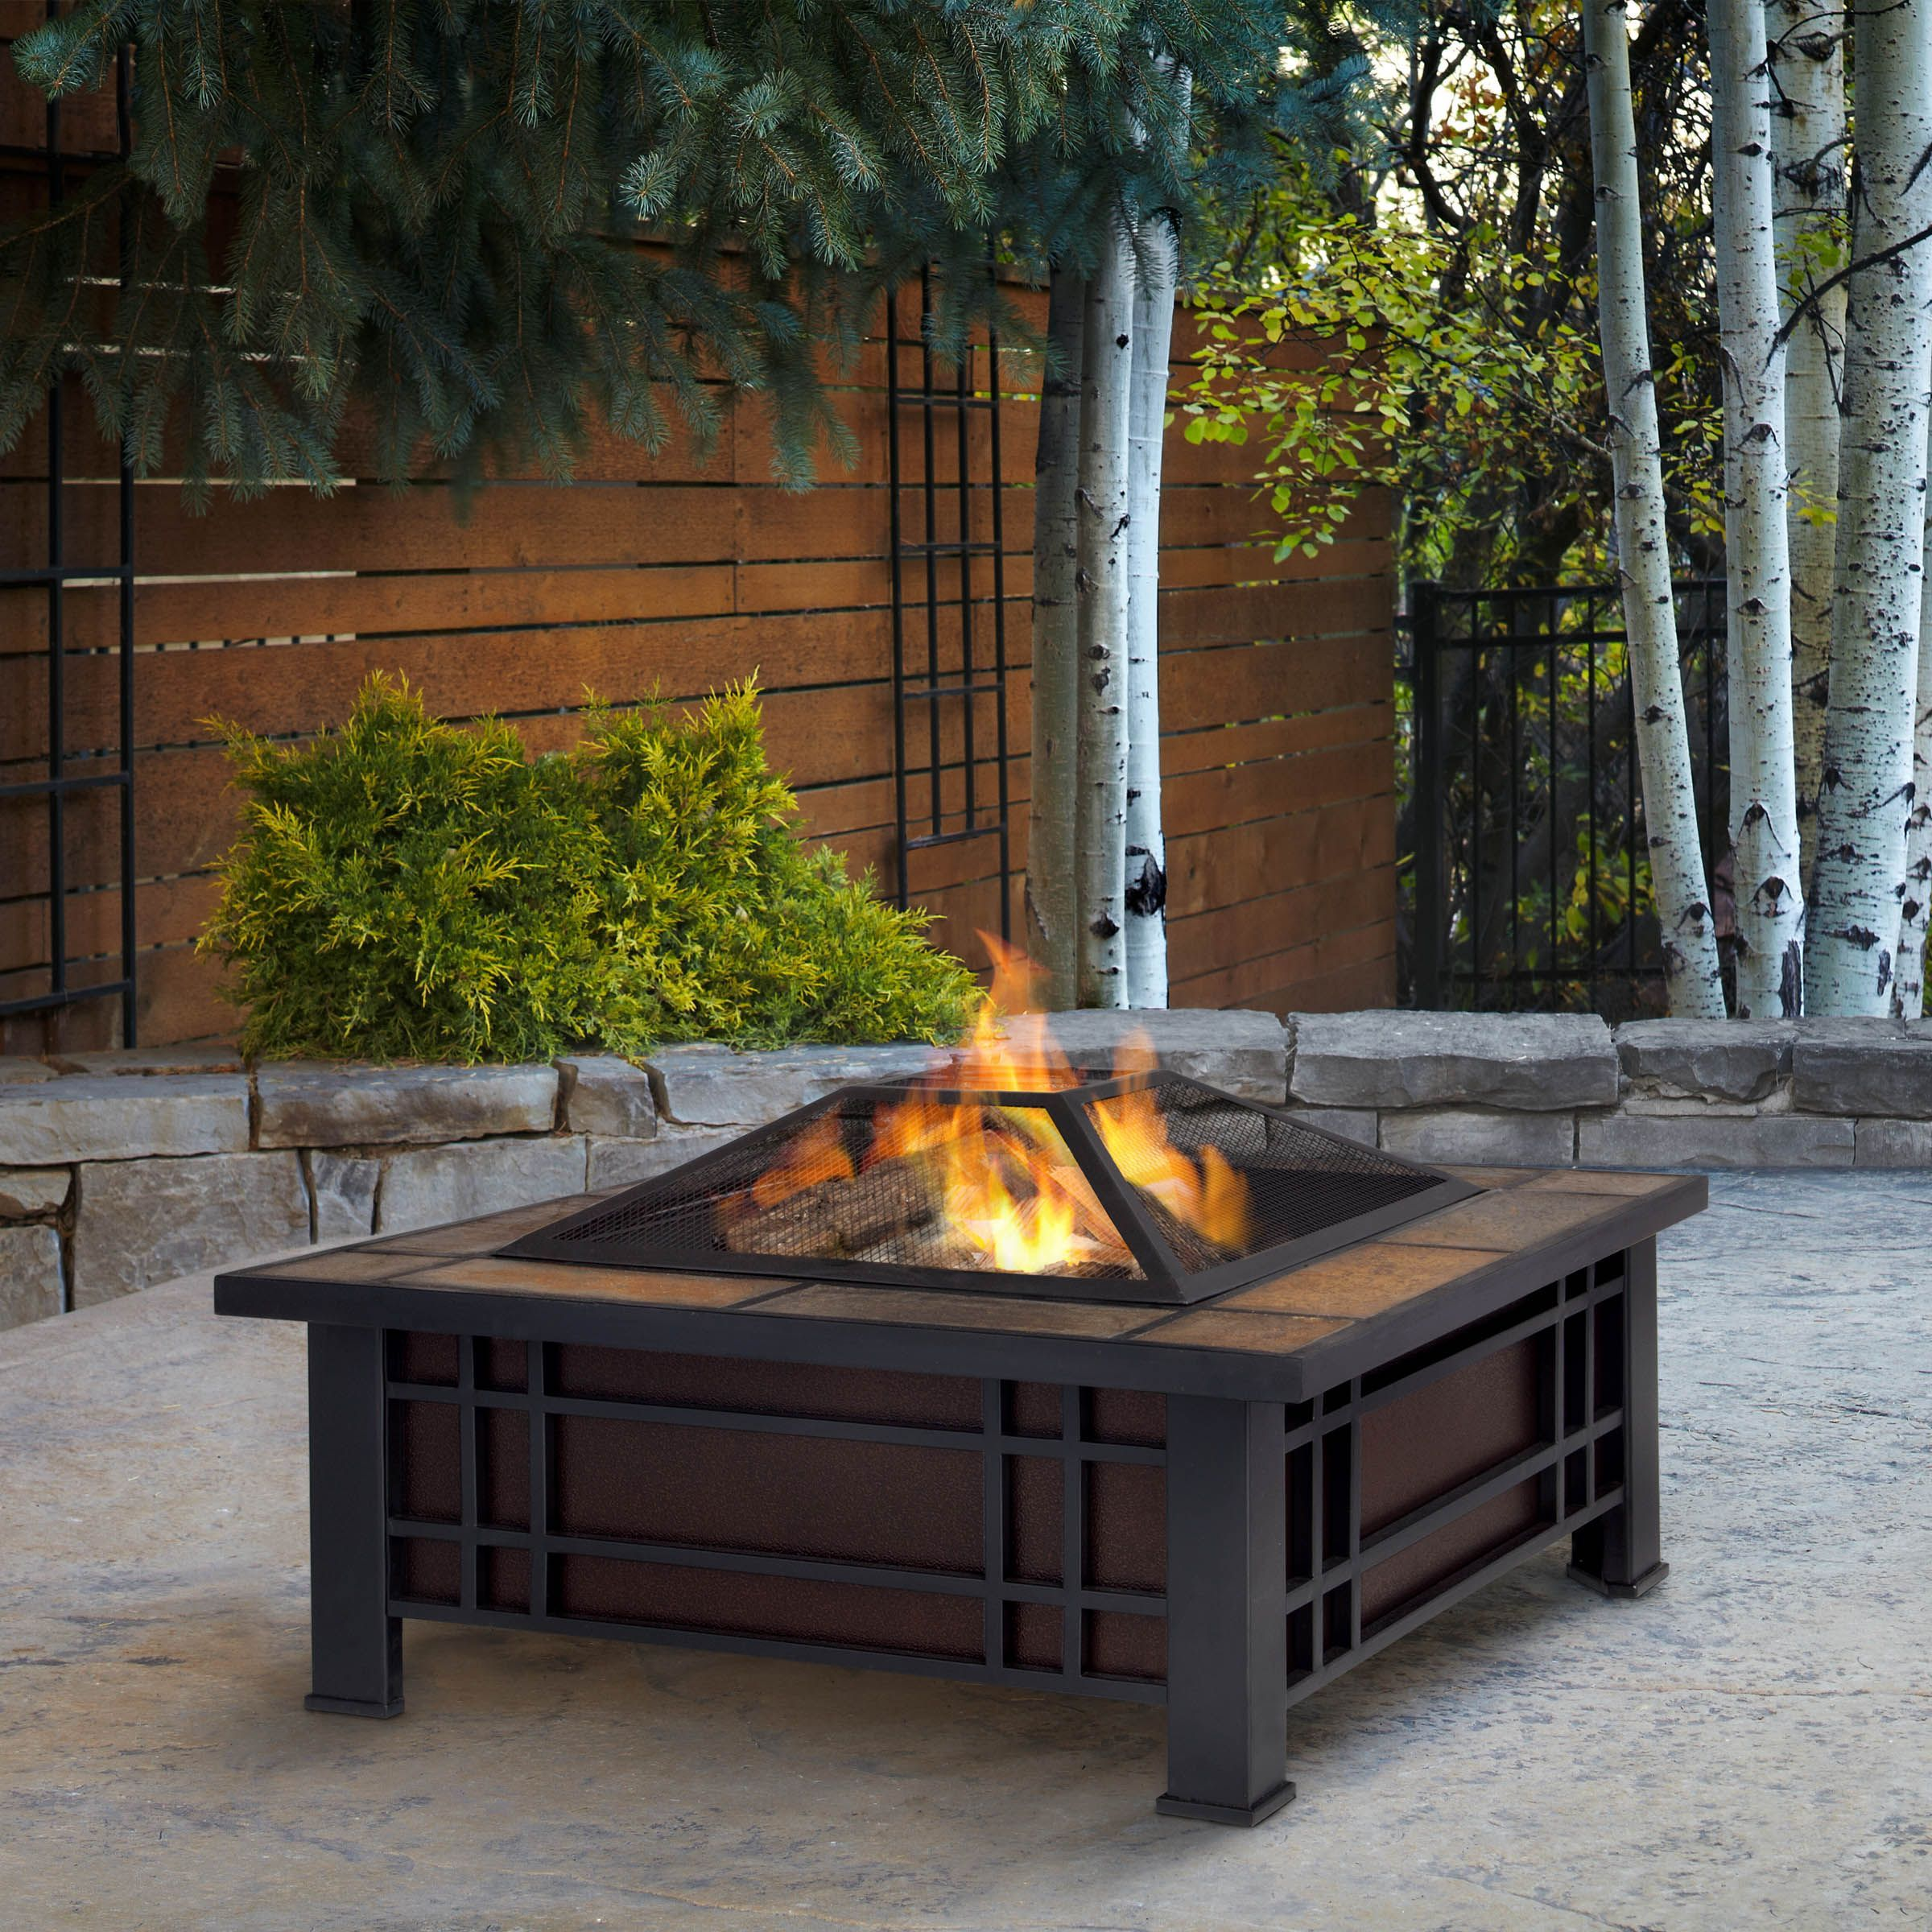 Enhance the atmosphere of your outdoor living space with this